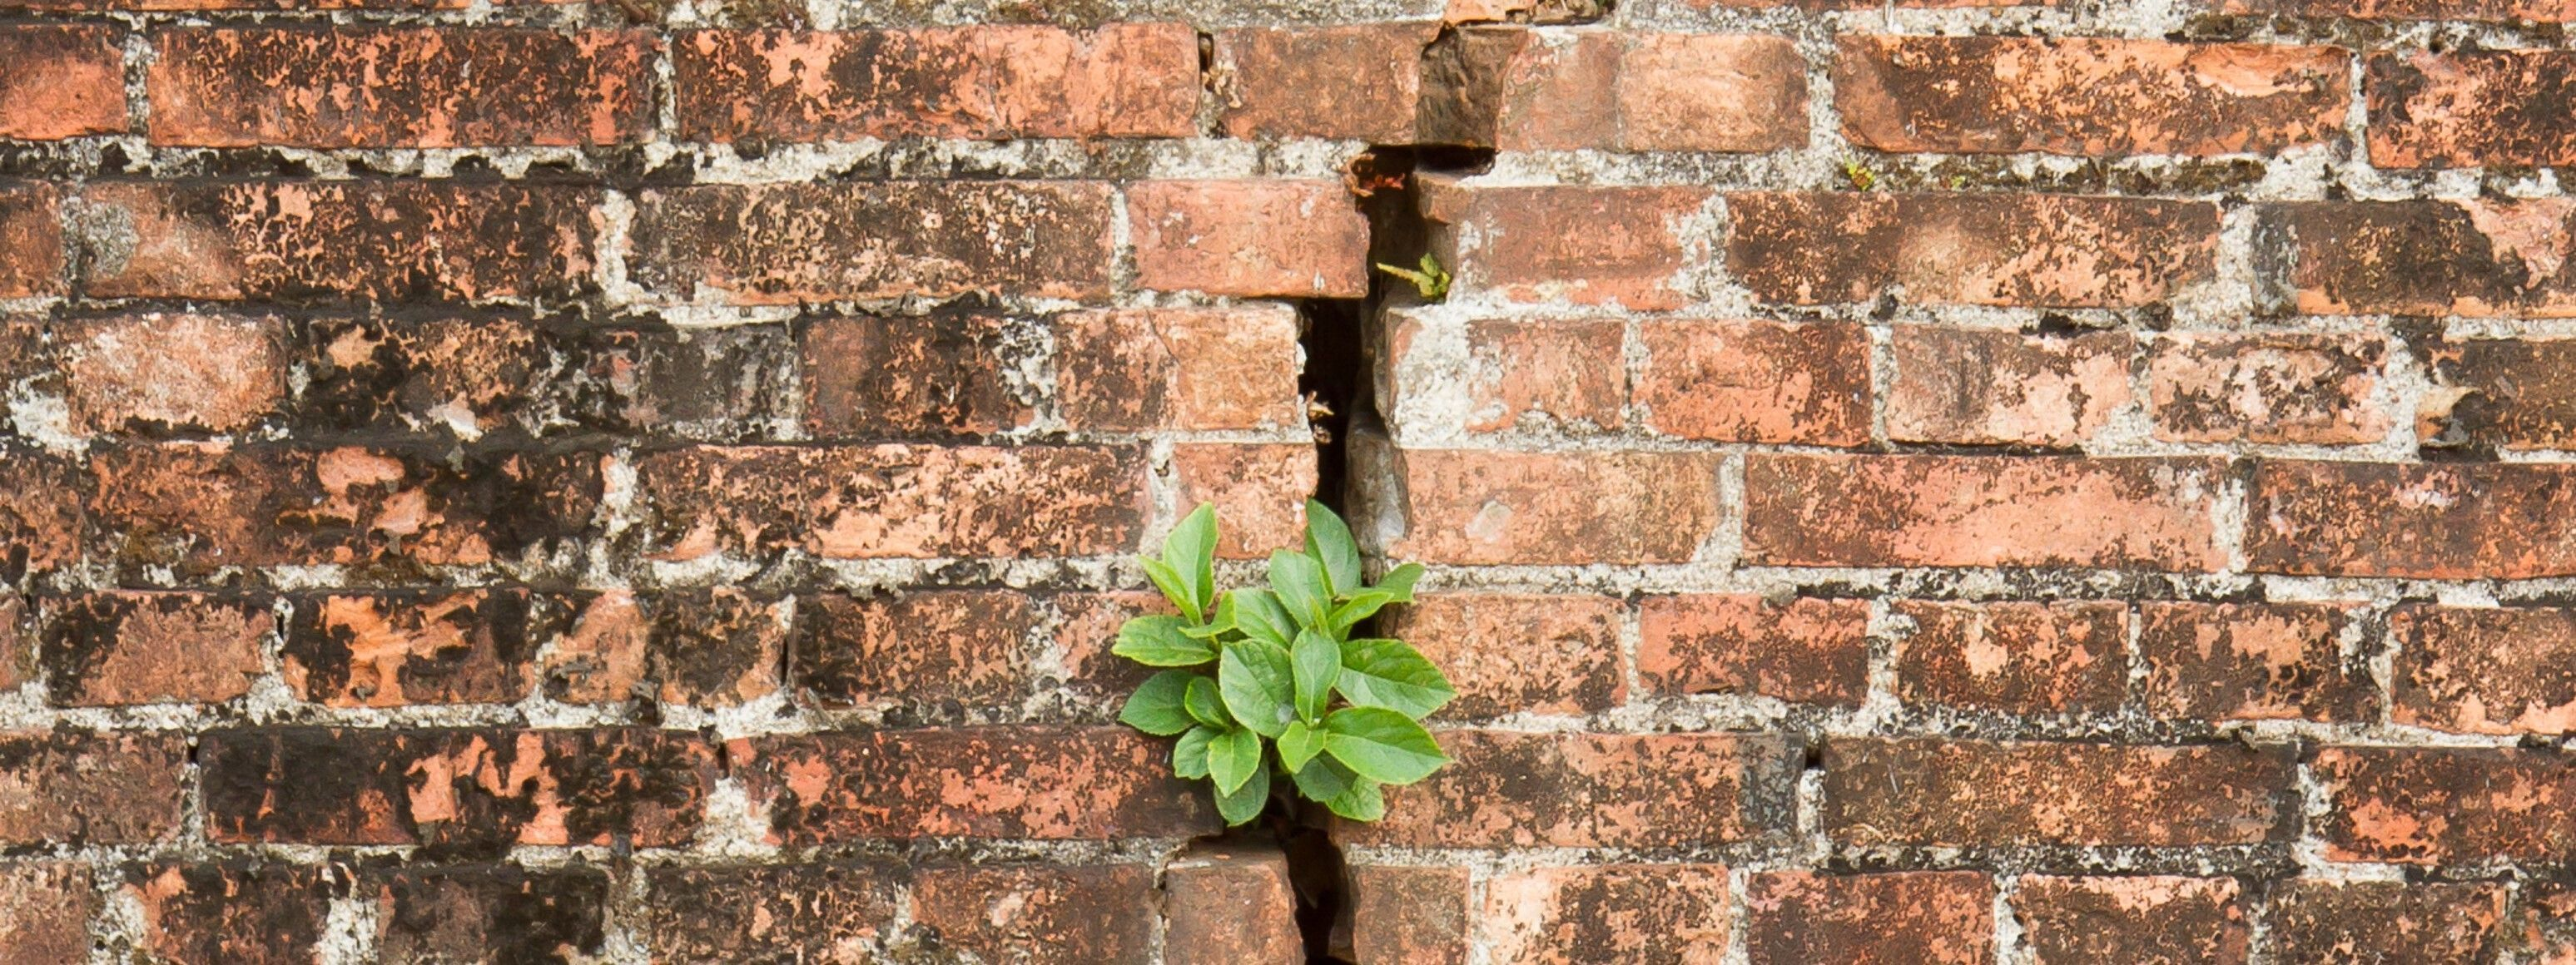 """For many descendants of enslaved Africans, genealogy research hits a """"brick wall"""" or a dead end at 1865. This image of the green plant breaking through the brick wall symbolizes both the ability of the 246 Years Project to break the genealogical """"brick wa"""